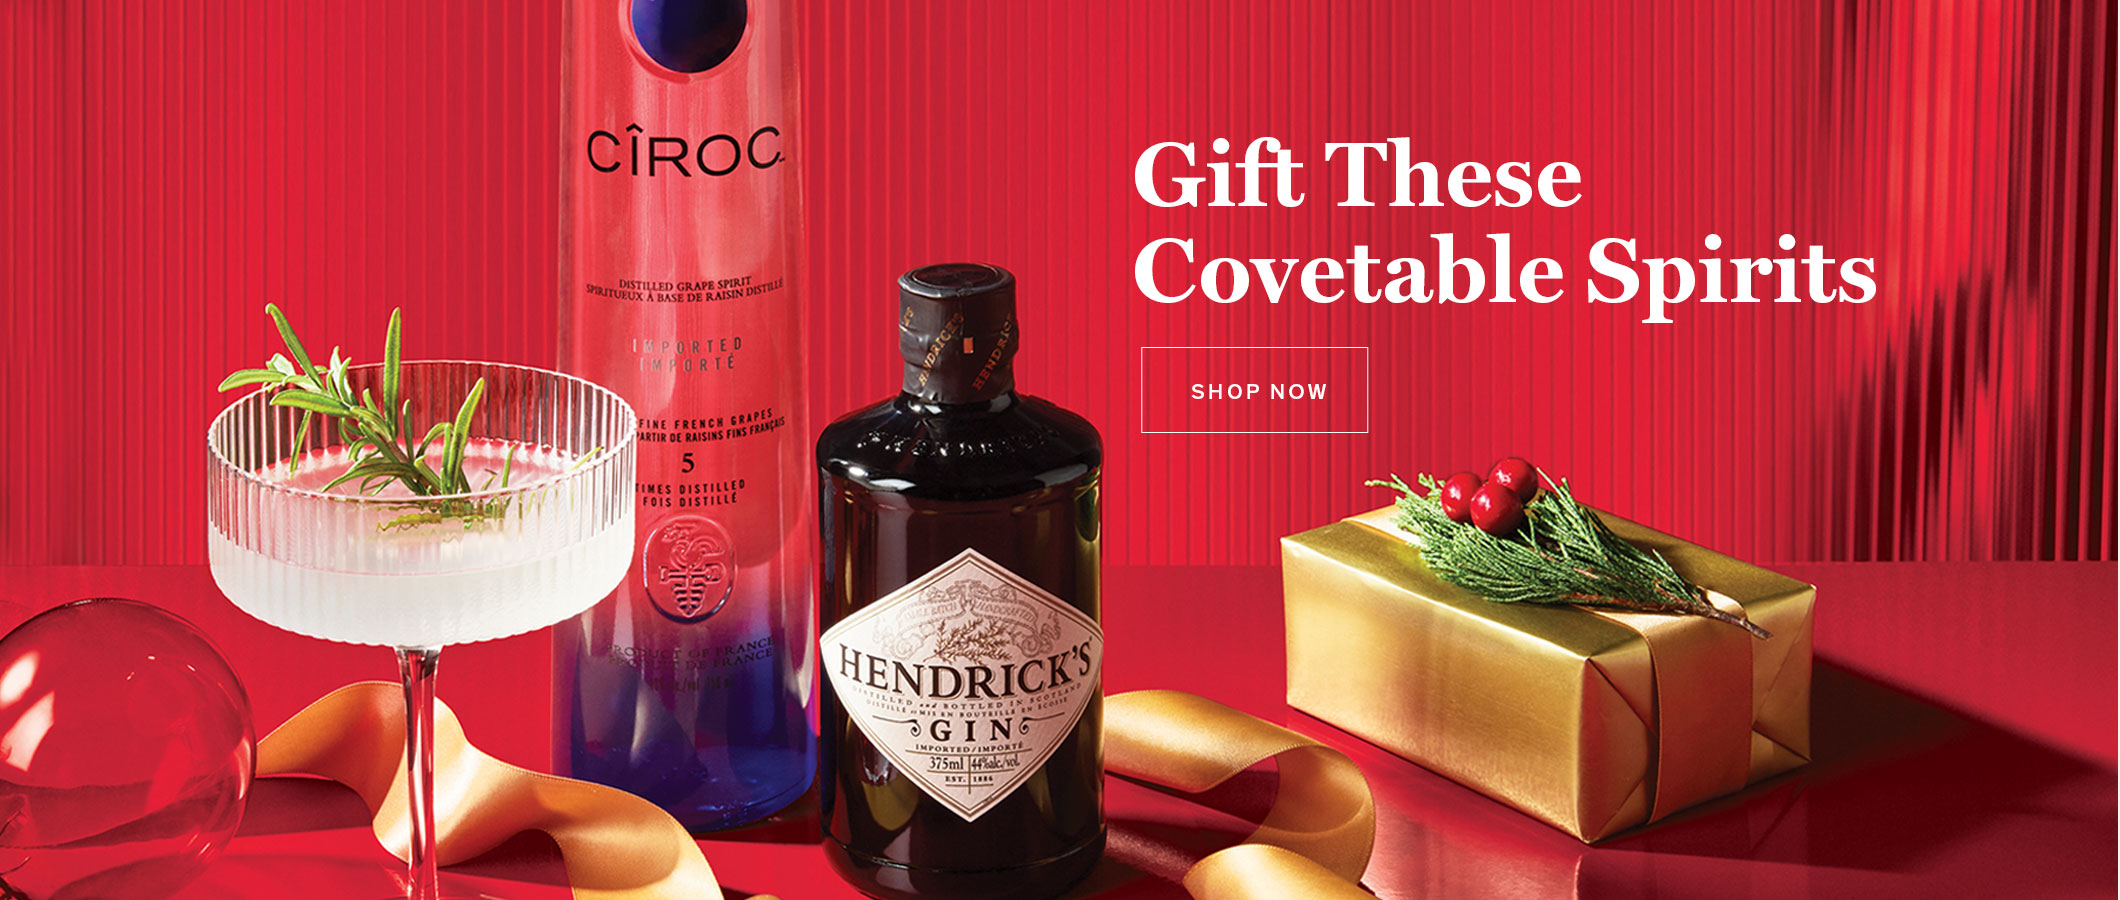 Gift These Covetable Spirits  START SHOPPING